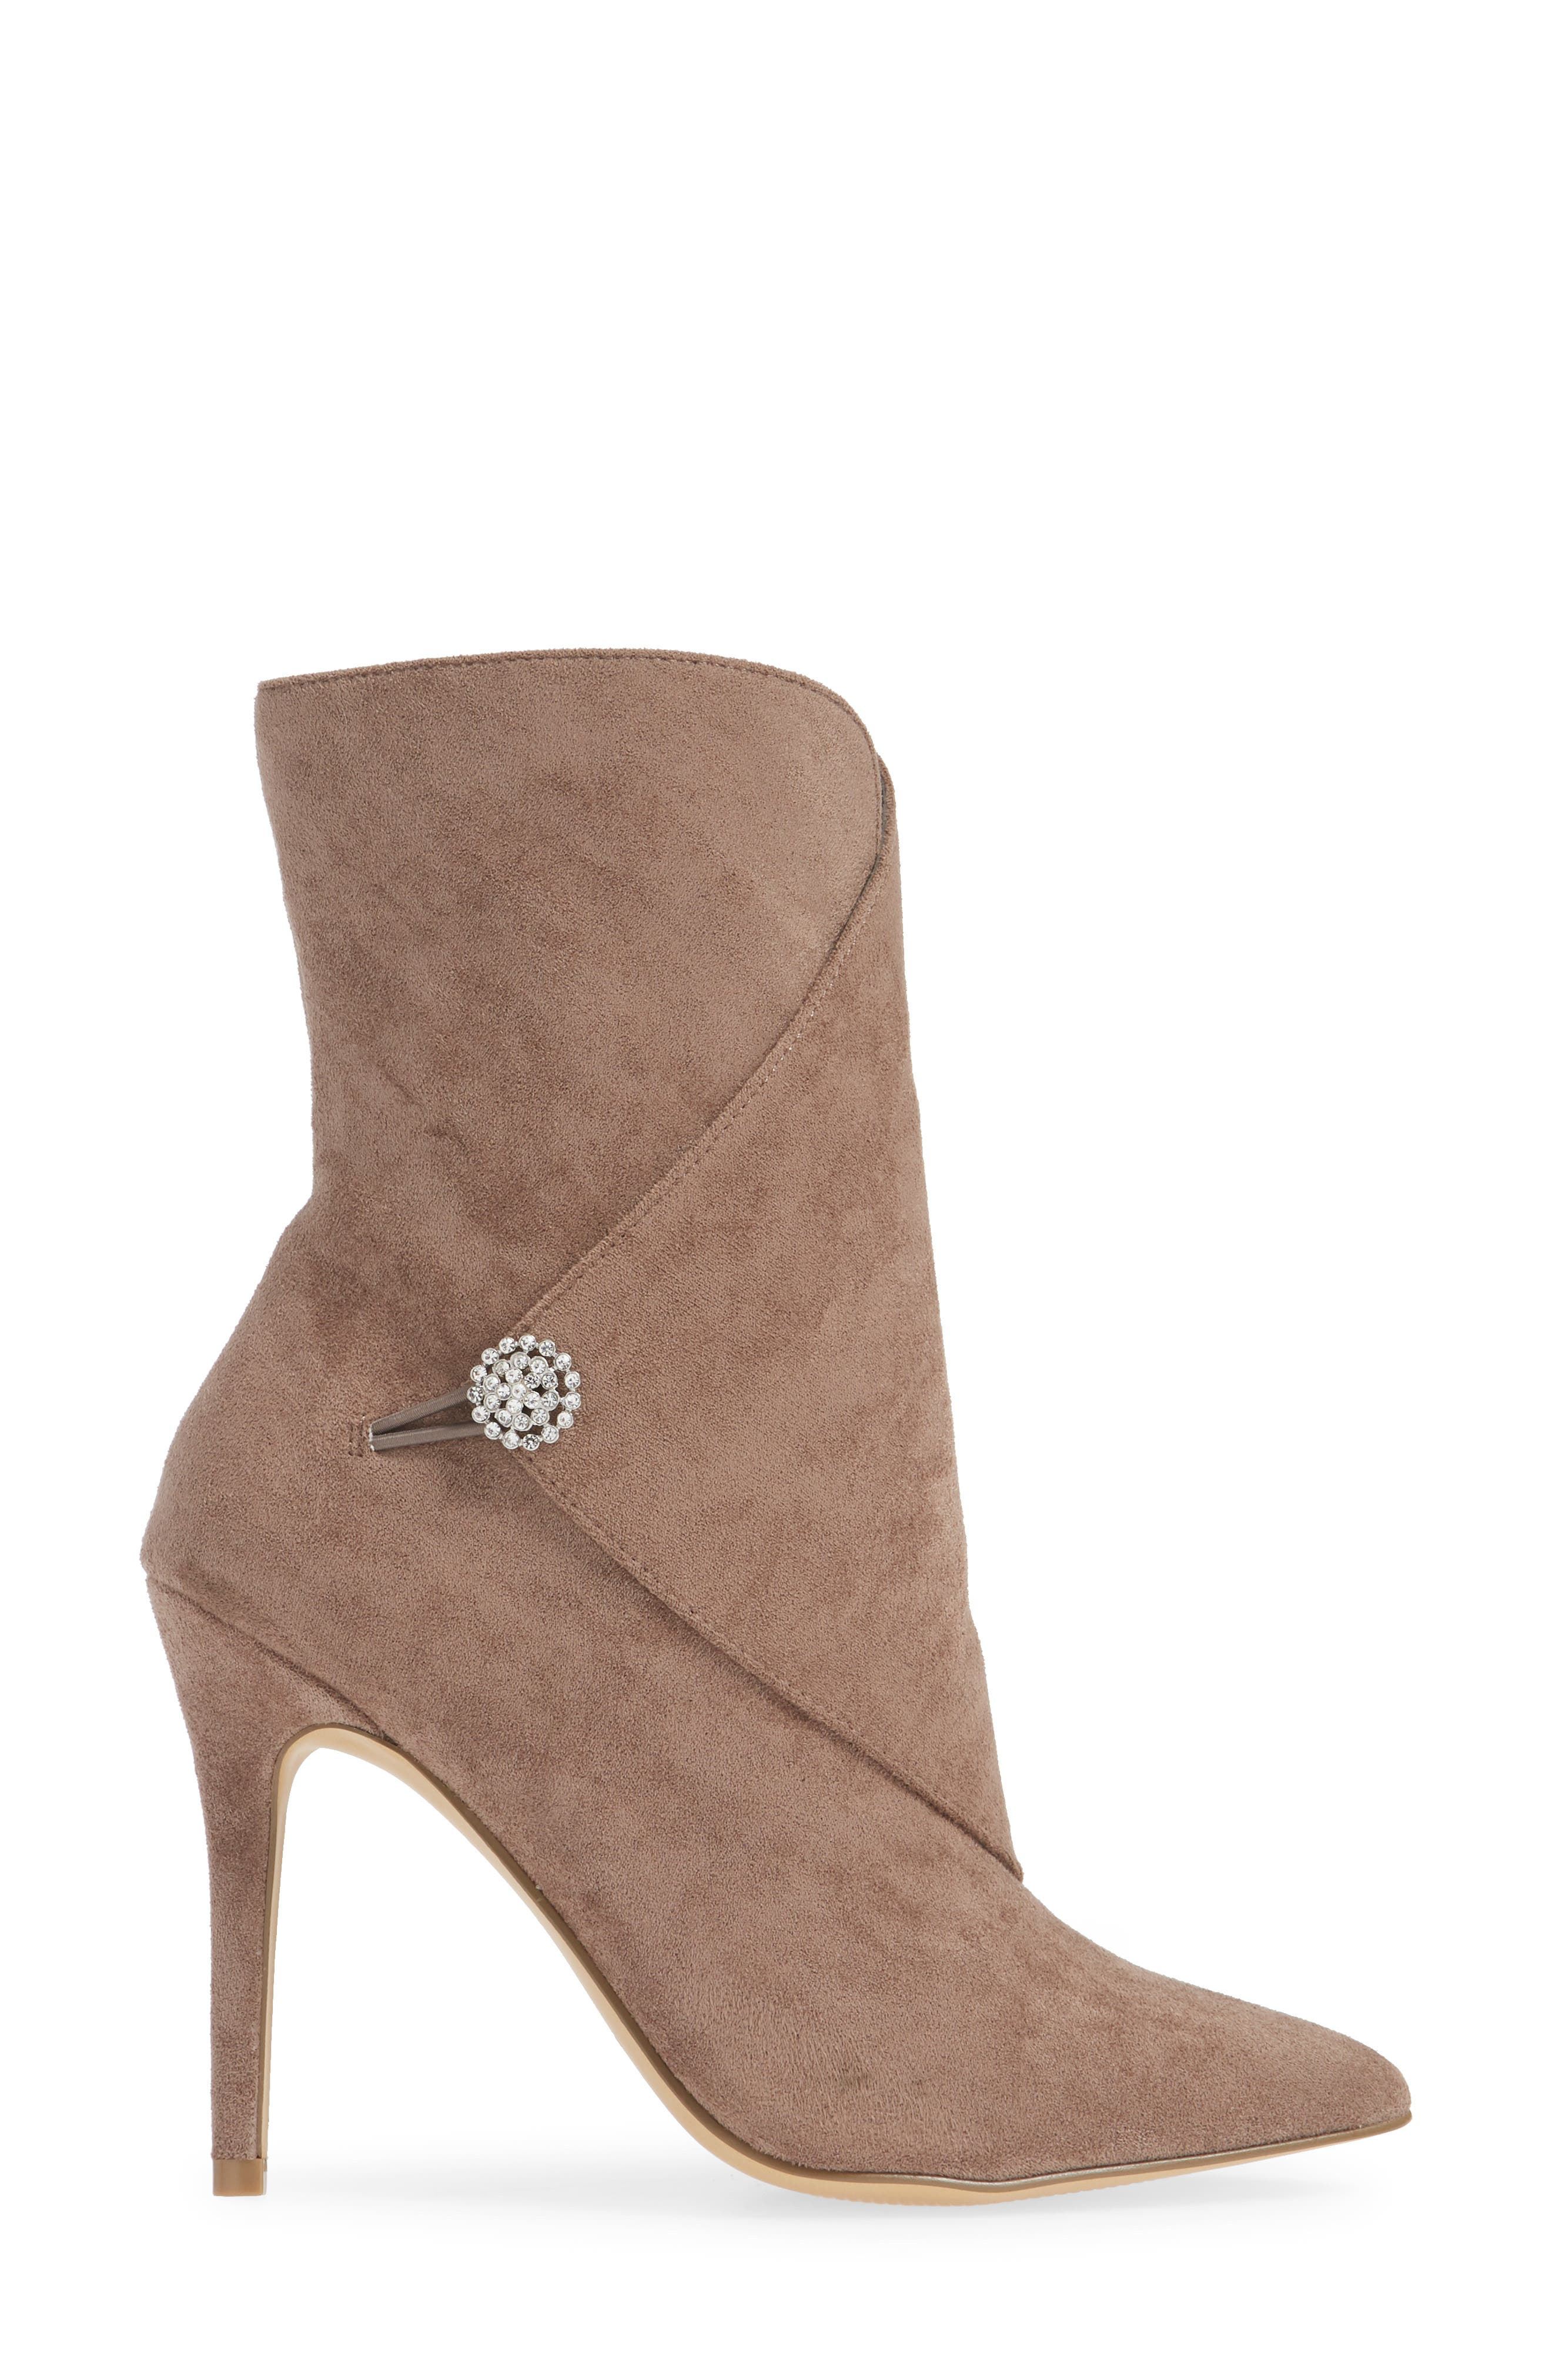 CHARLES BY CHARLES DAVID, Pistol Crystal Embellished Pointy Toe Bootie, Alternate thumbnail 3, color, TAUPE SUEDE